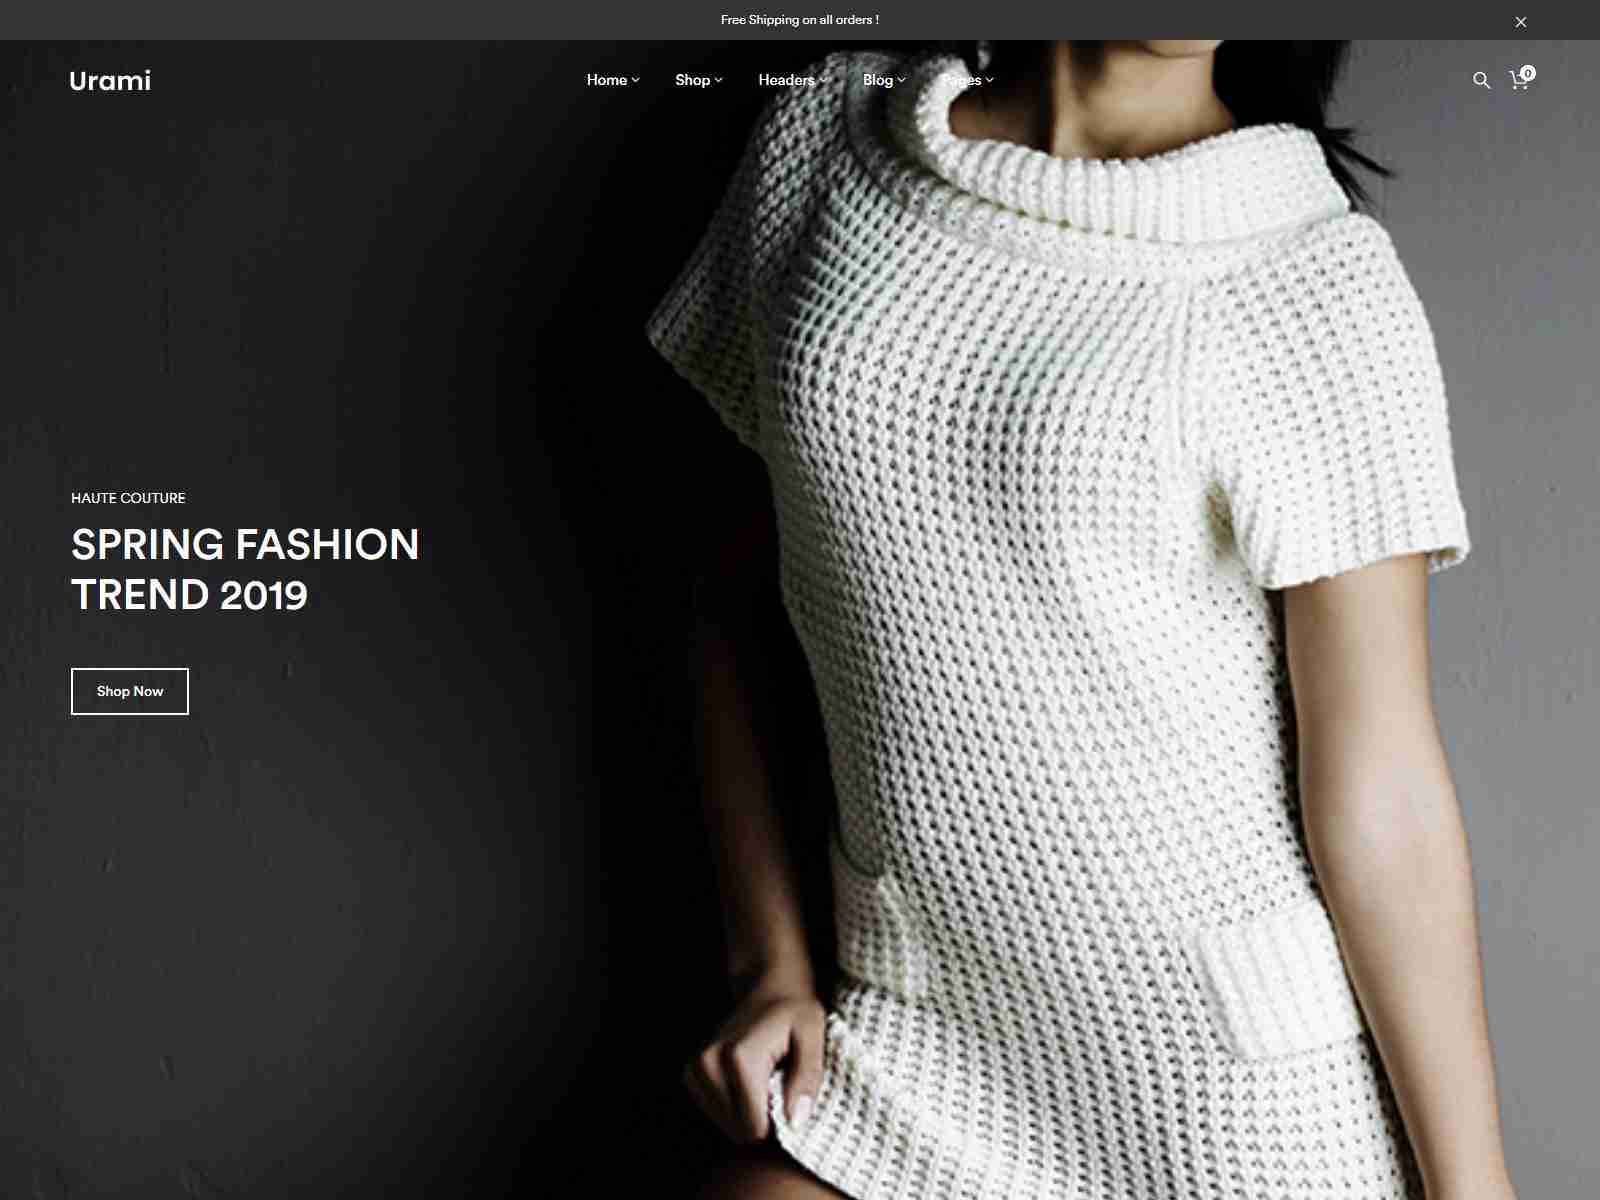 Urami WP - Modern minimalist WooCommerce theme fashion wordpress themes